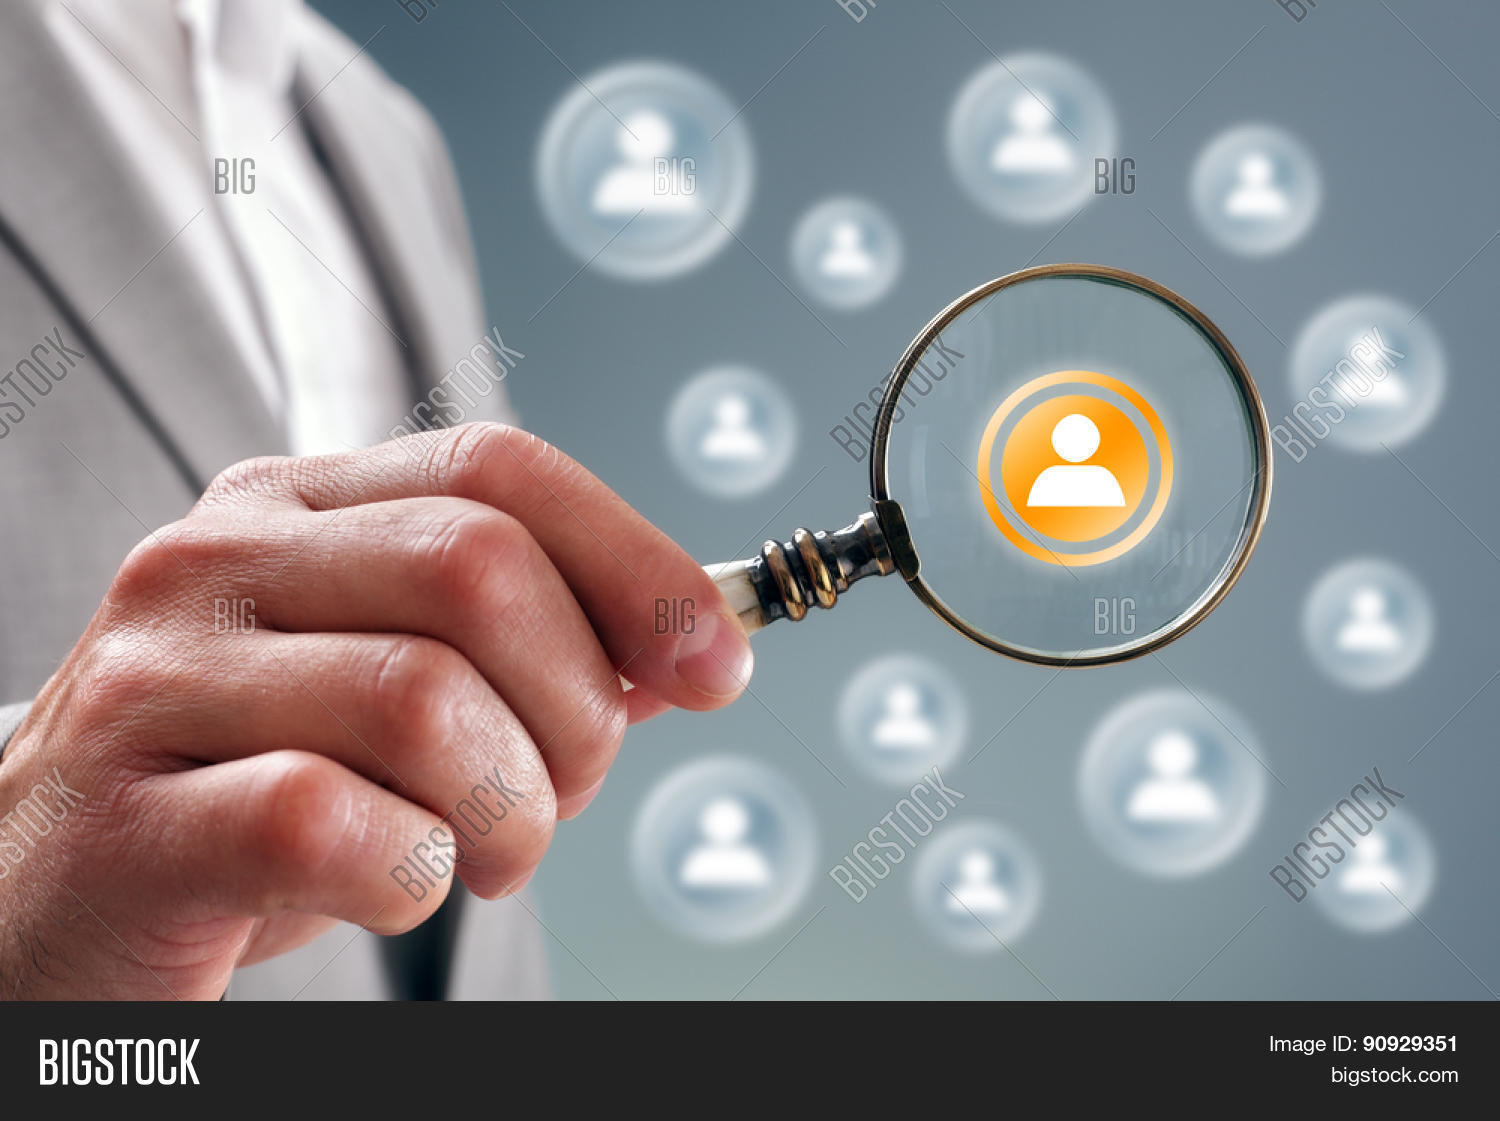 business,business icons,businessman,business networking,business suit,business team,career,career icon,chat,choice,colour,communication,communications,community,community icon,computer,computer network,concepts,connection,connection concept,contact,contact icon,customer,discovery,e-business,e-mail,employee,friends,gathering,glass,global,hand,headhunter,hr,human,human resources concept,icon,icons business,individuality,internet,internet icon,internet icons,internet marketing,like,looking,magnification,magnifying,magnifying glass,mail icon,man,man icon,marketing,marketing concept,marketing concepts,marketing icon,marketing icons,marketing people,marketing team,media,multimedia,network,networking,networking concept,networking people,network marketing,occupation,people,people icon,people icons,personnel,recruitment,resources,search,search icon,social,social icons,social marketing,social media,social media business,social media icons,social media marketing,social media people,social network,social network icons,social networks,suit,symbol,target icon,targeting,target market,team,teamwork